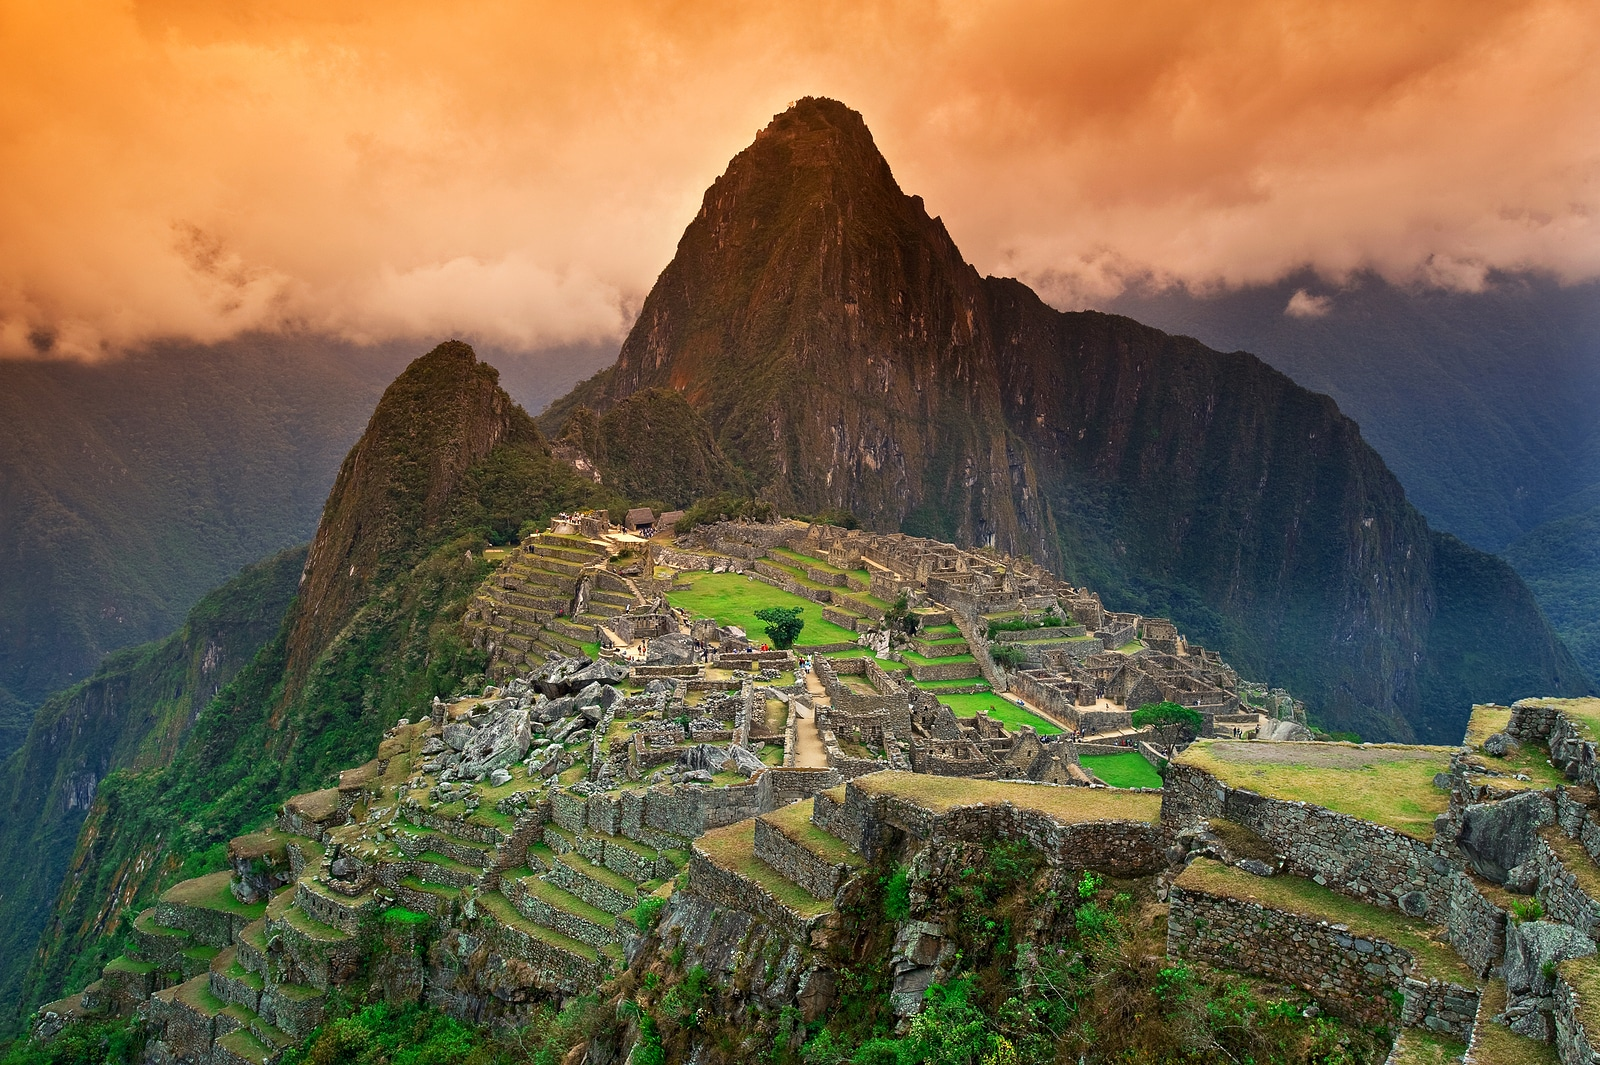 View of the Lost Incan City of Machu Picchu near Cusco Peru. ** Note: Slight blurriness, best at smaller sizes